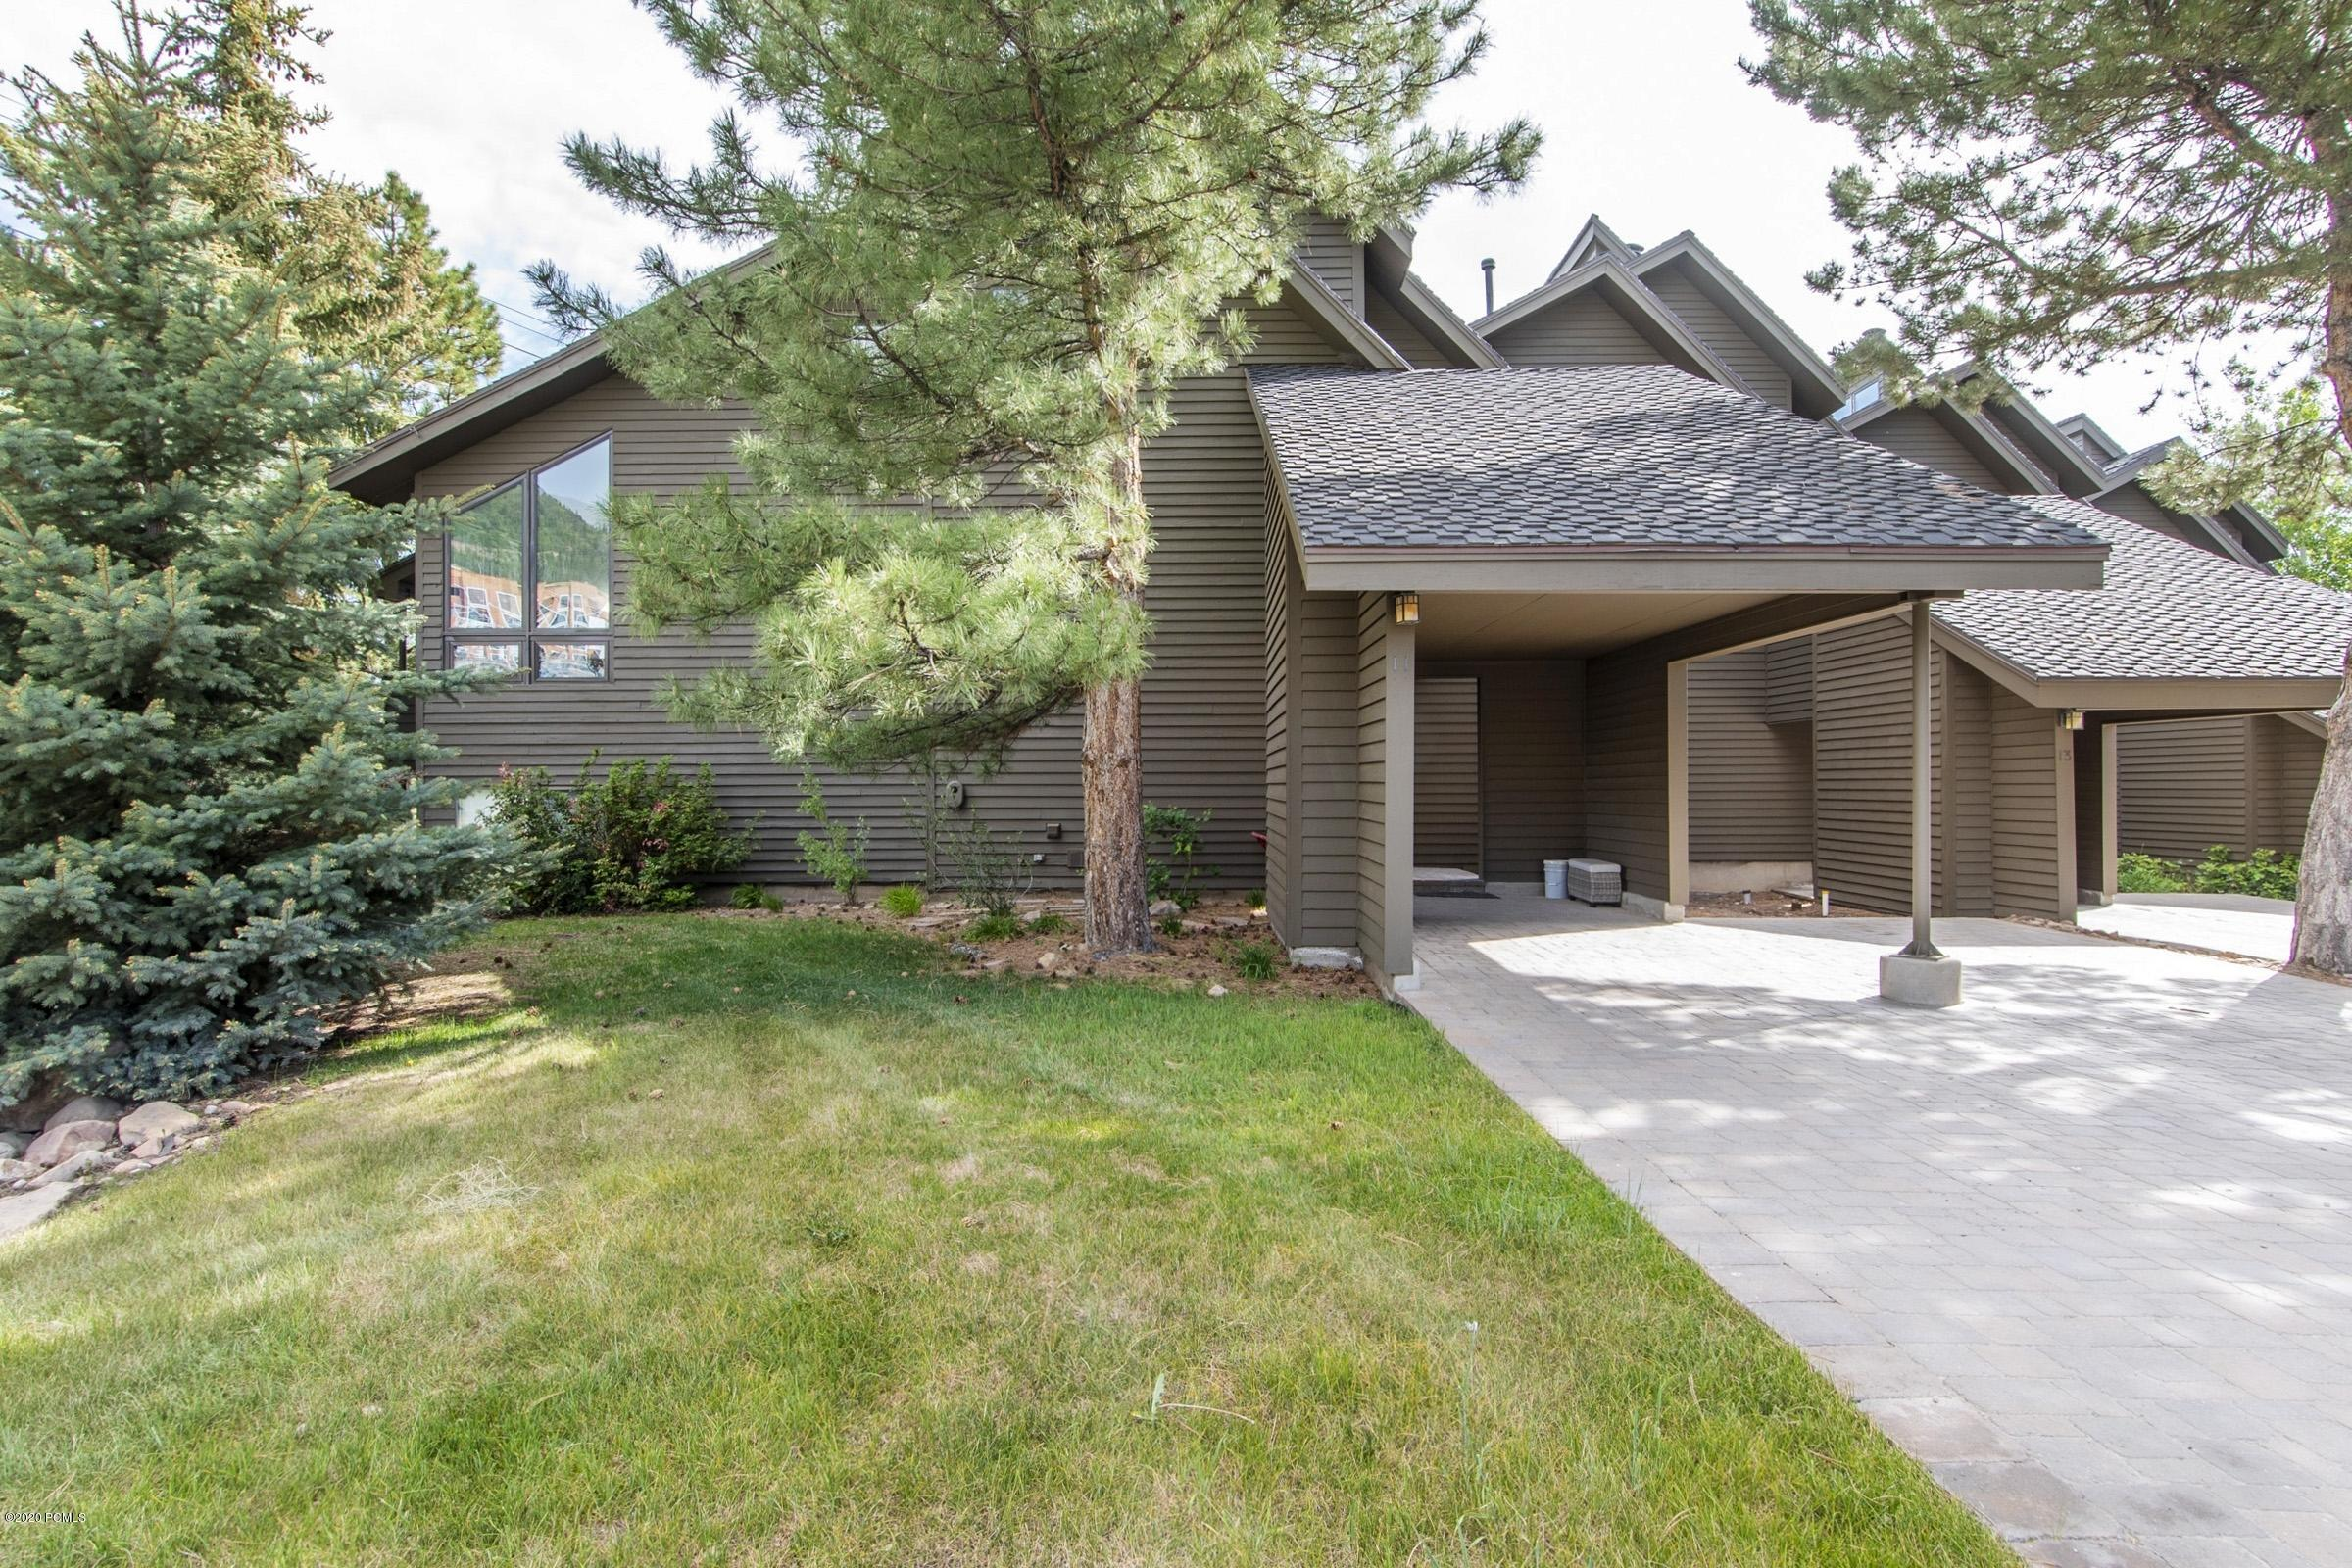 2148 Apache Trail, Park City, Utah 84098, 4 Bedrooms Bedrooms, ,4 BathroomsBathrooms,Condominium,For Sale,Apache,20190109112430415765000000